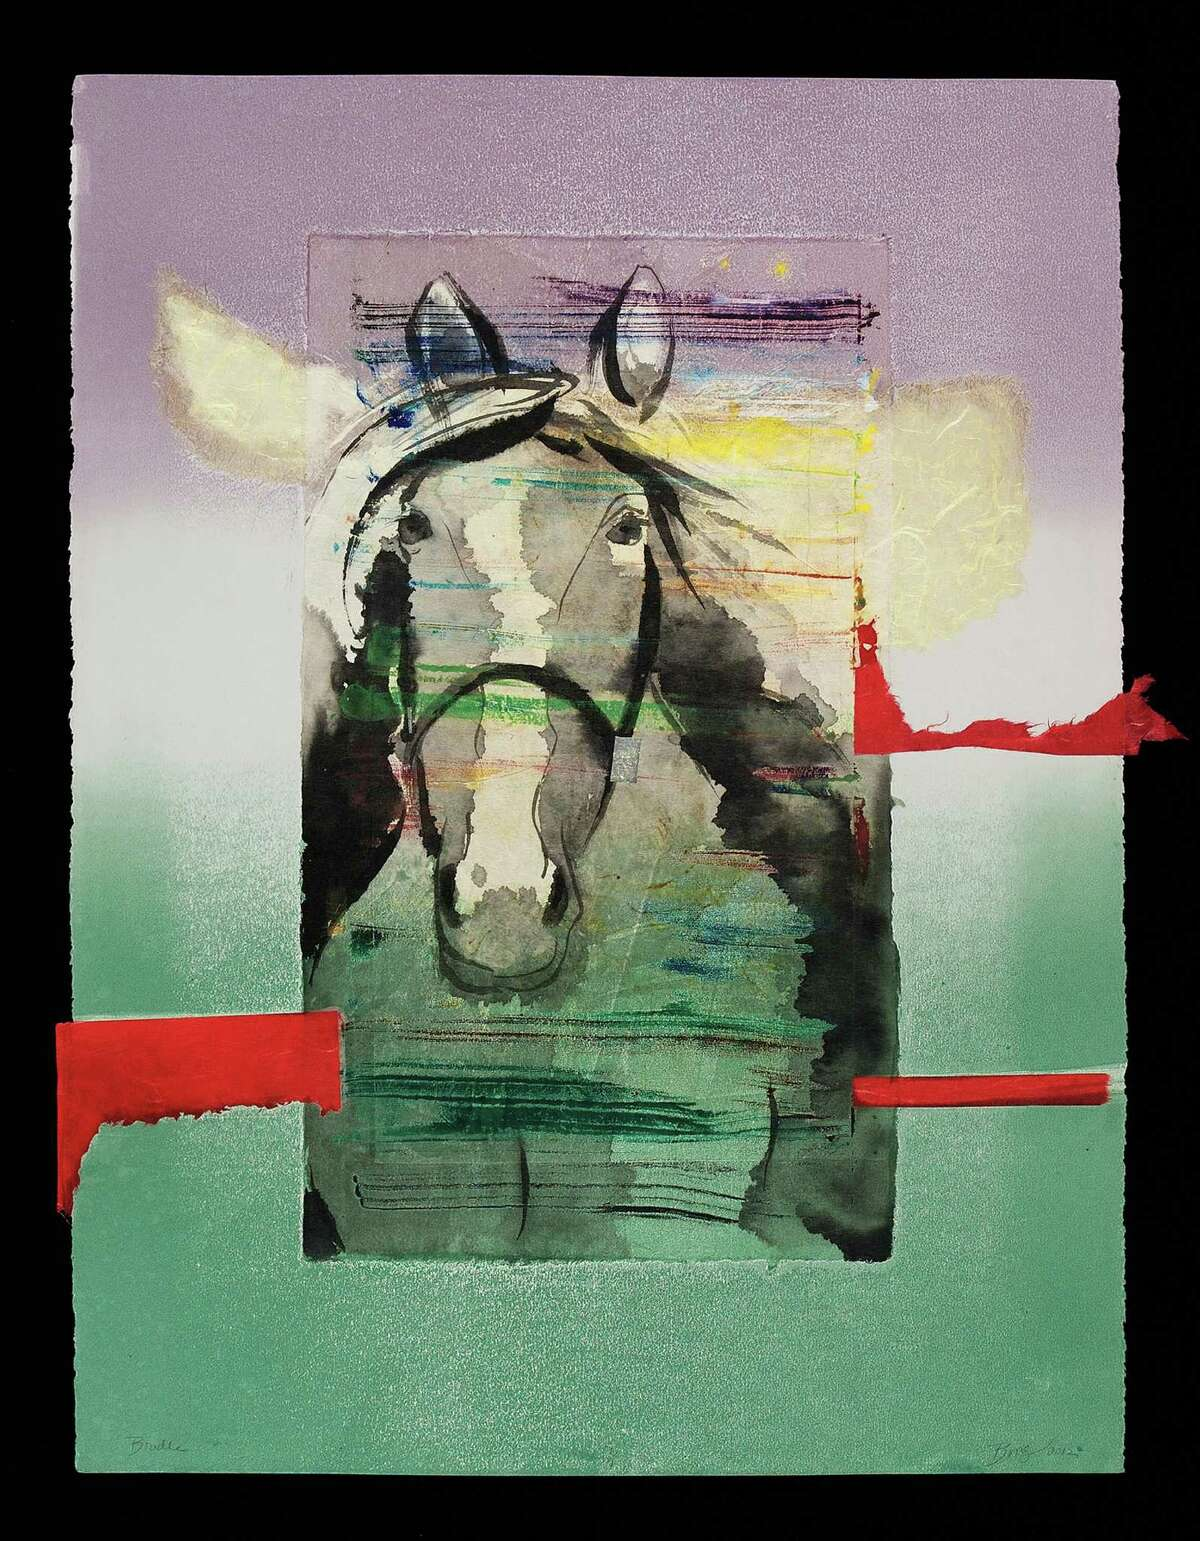 """Bingham received an honorable mention at the Portraits in Print show presently on view at the Center for Contemporary Print Making in Norwalk, for her monotype print, """"Bridle."""""""